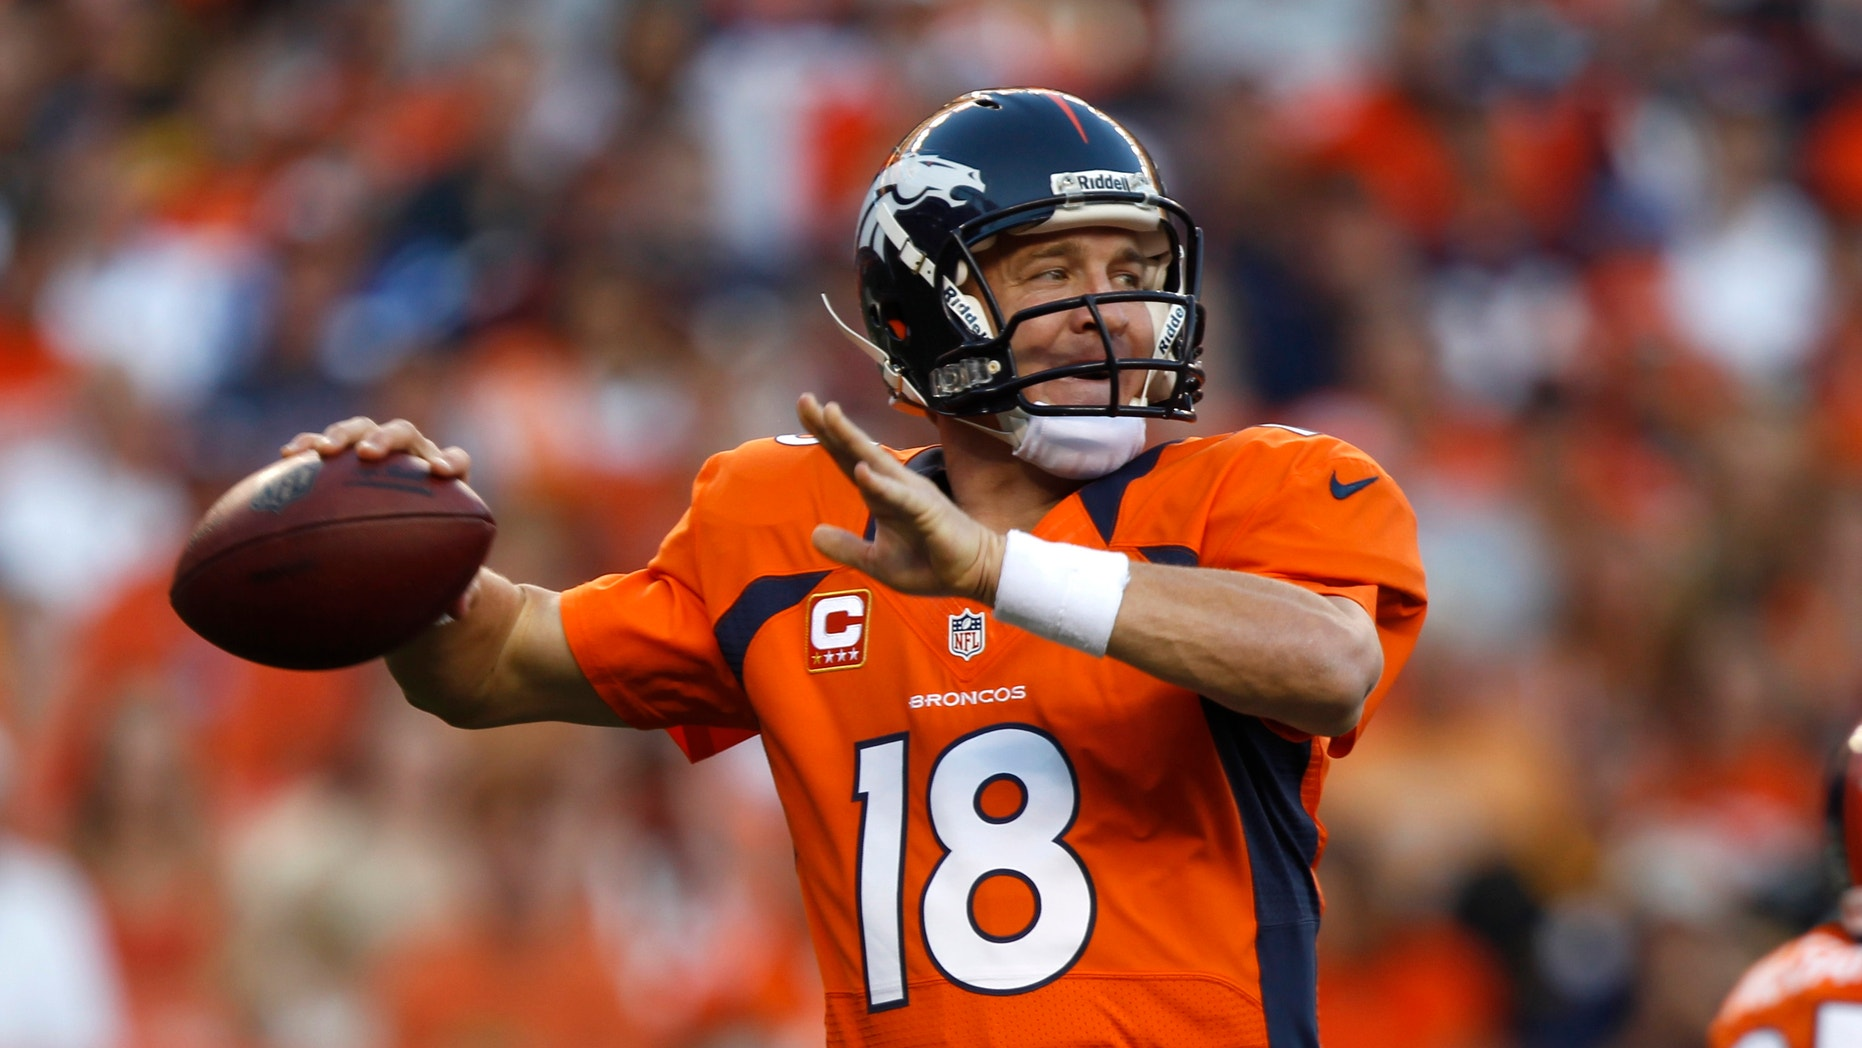 Sept. 9, 2012: Denver Broncos quarterback Peyton Manning looks to pass against the Pittsburgh Steelers during the first quarter of an NFL football game.